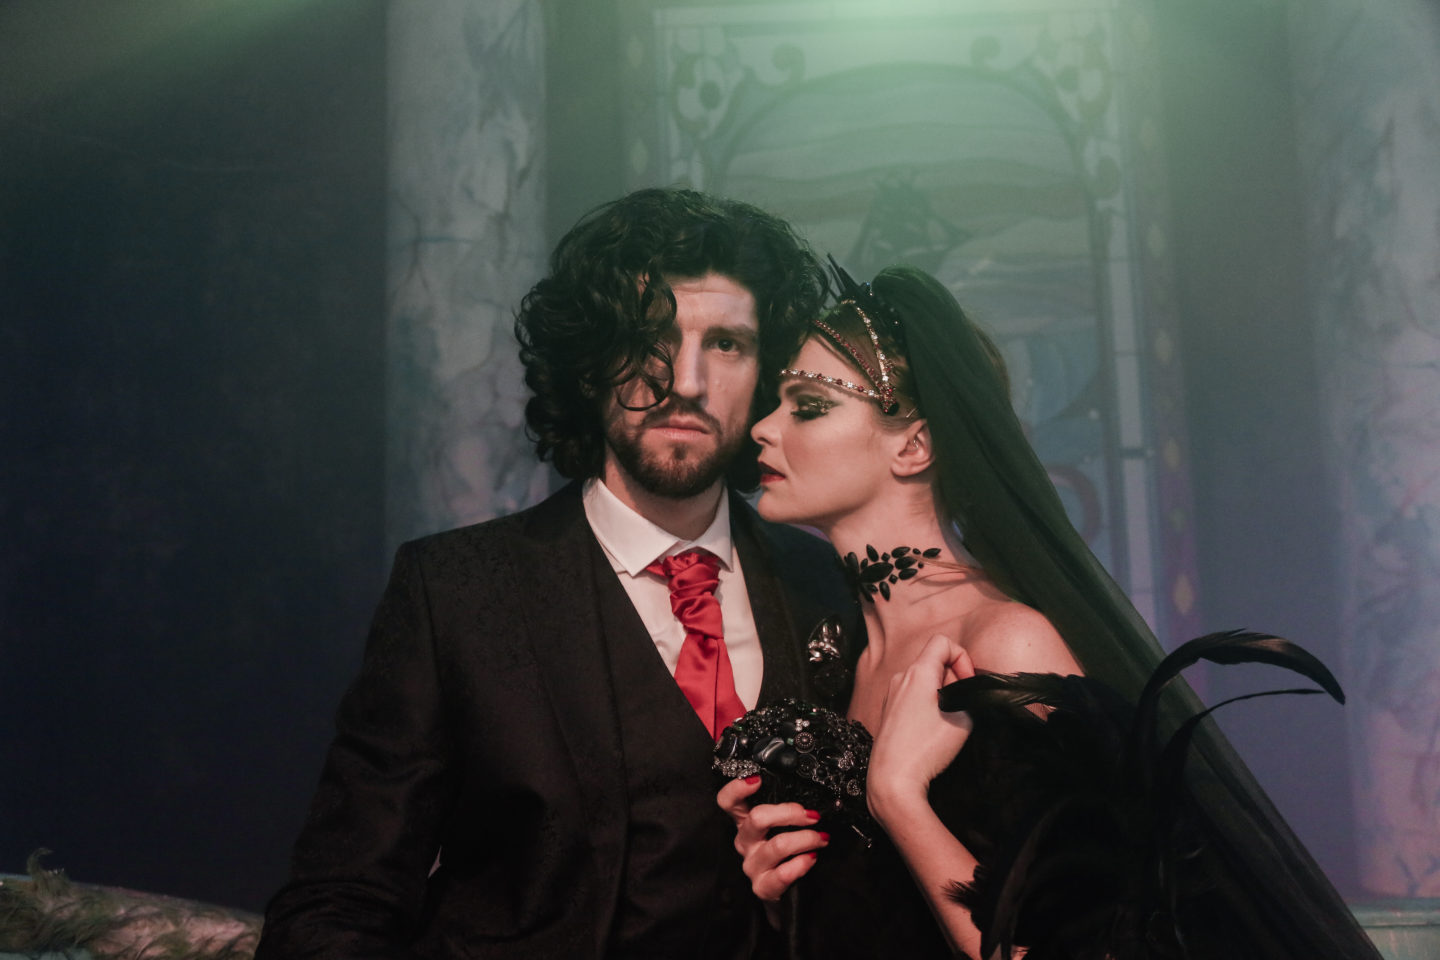 Gothic Opulent Wedding Inspiration At The Vaults, London